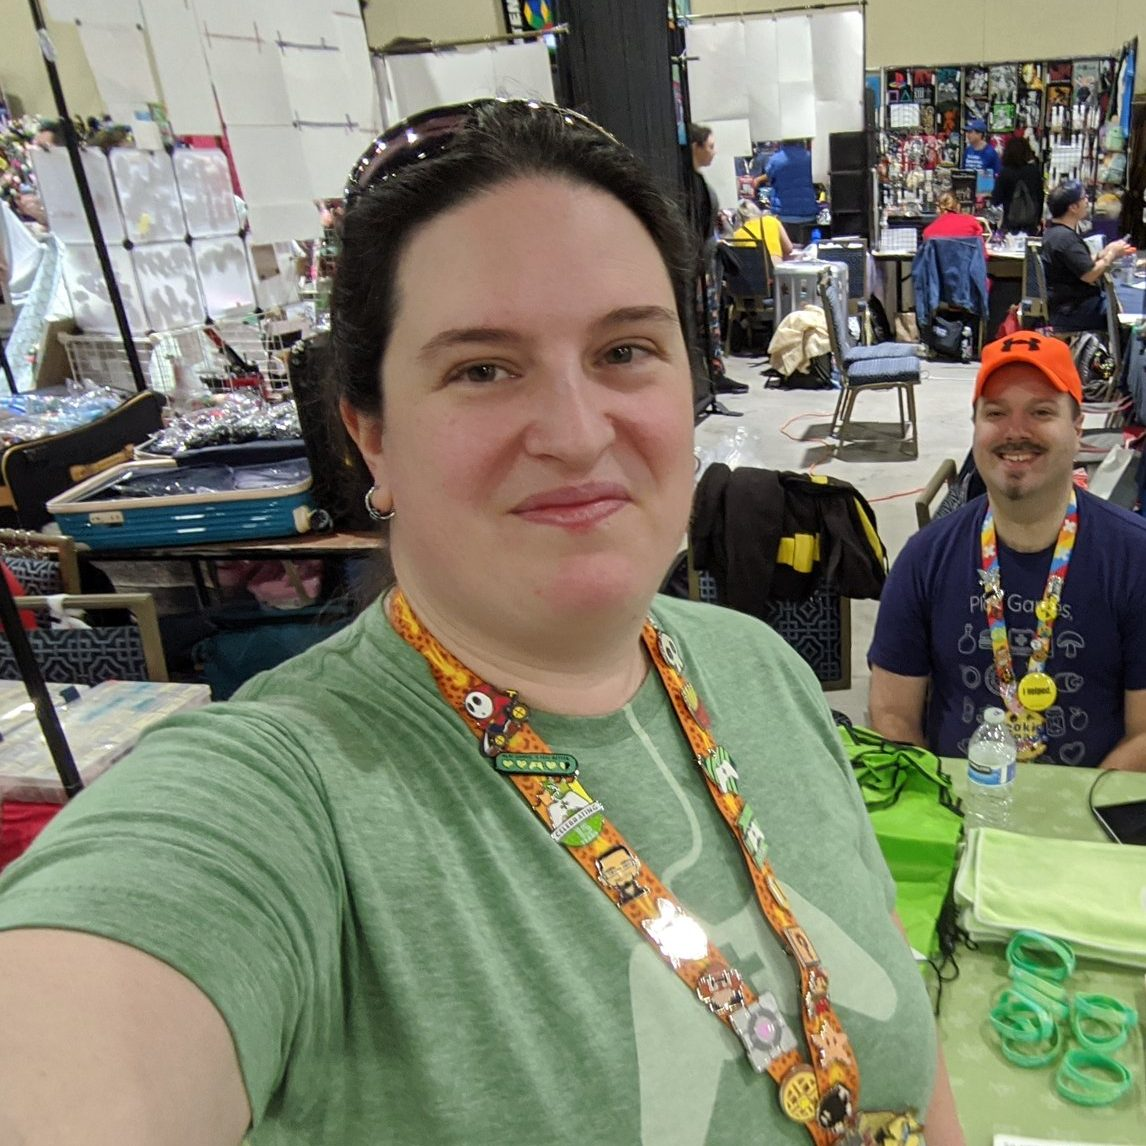 Ransim and robziel in the background posing while manning the Child's Play booth at Magfest 2020